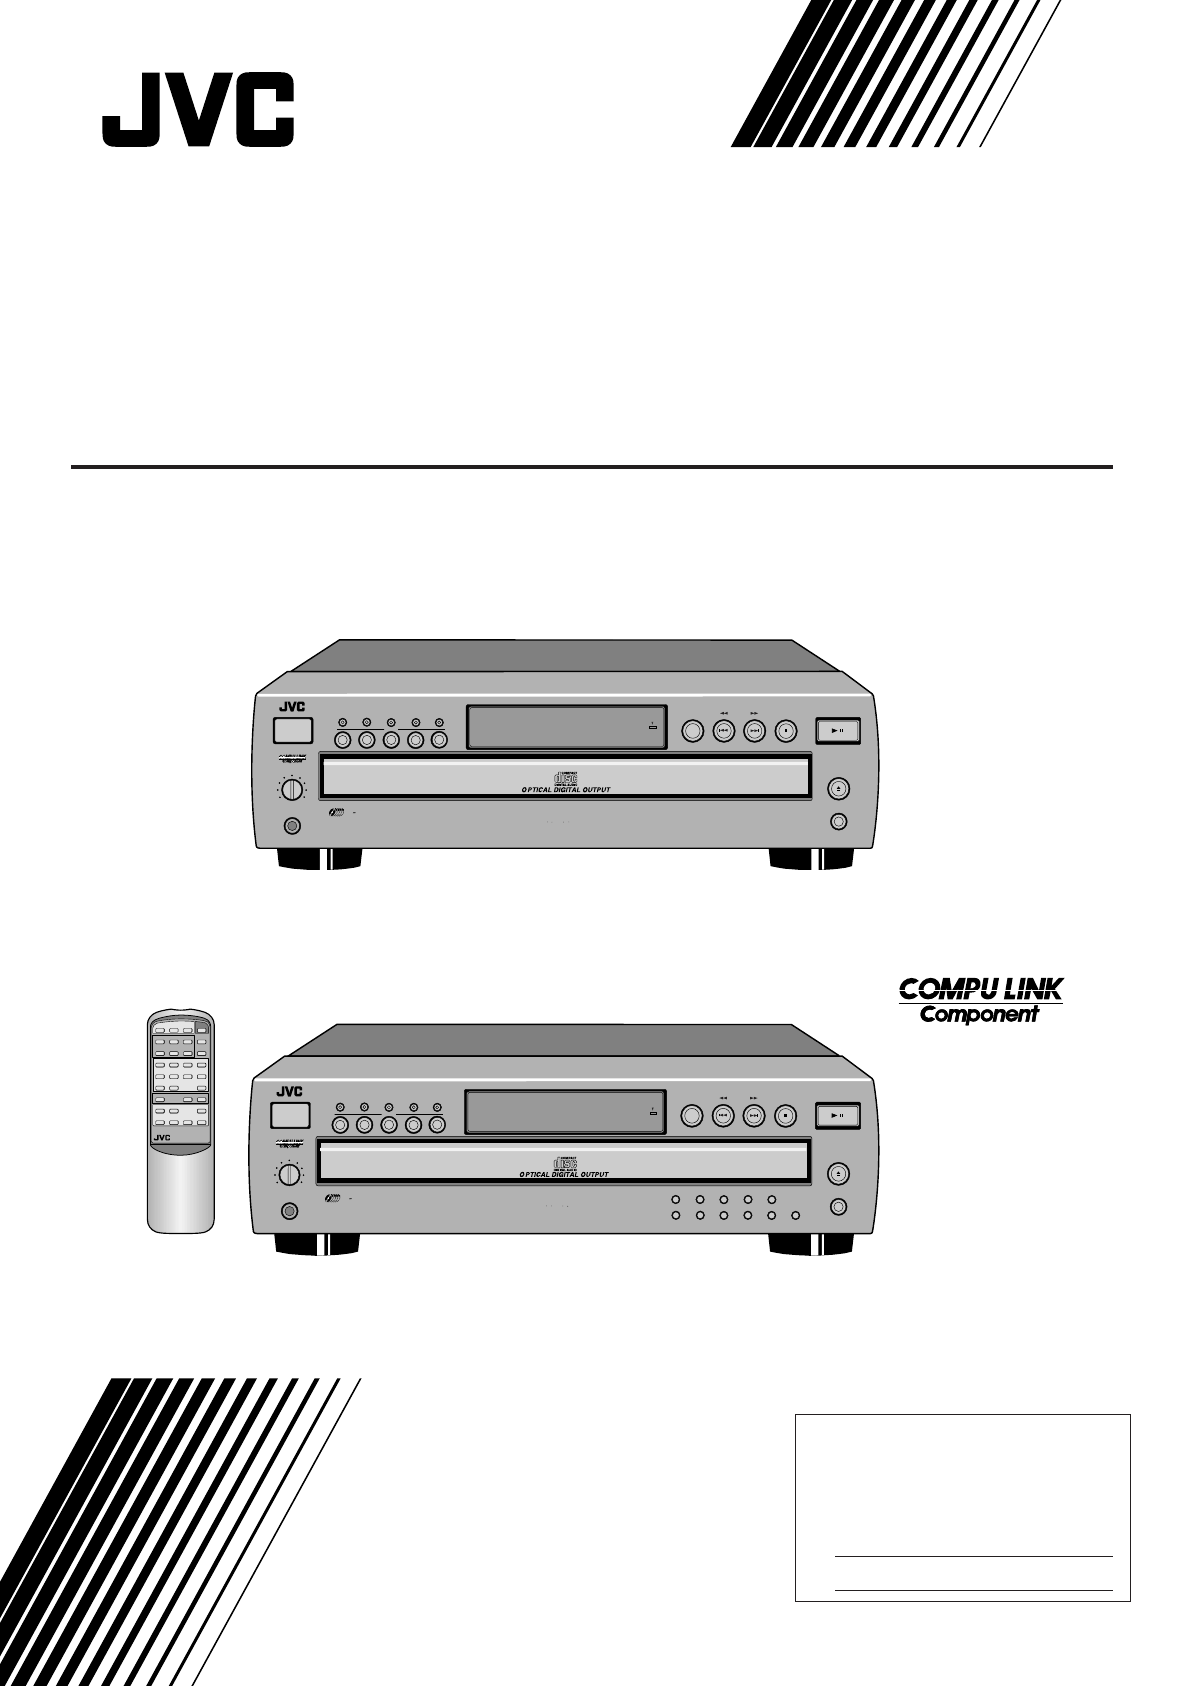 Jvc Cd Player Xl Fz158bk User Guide